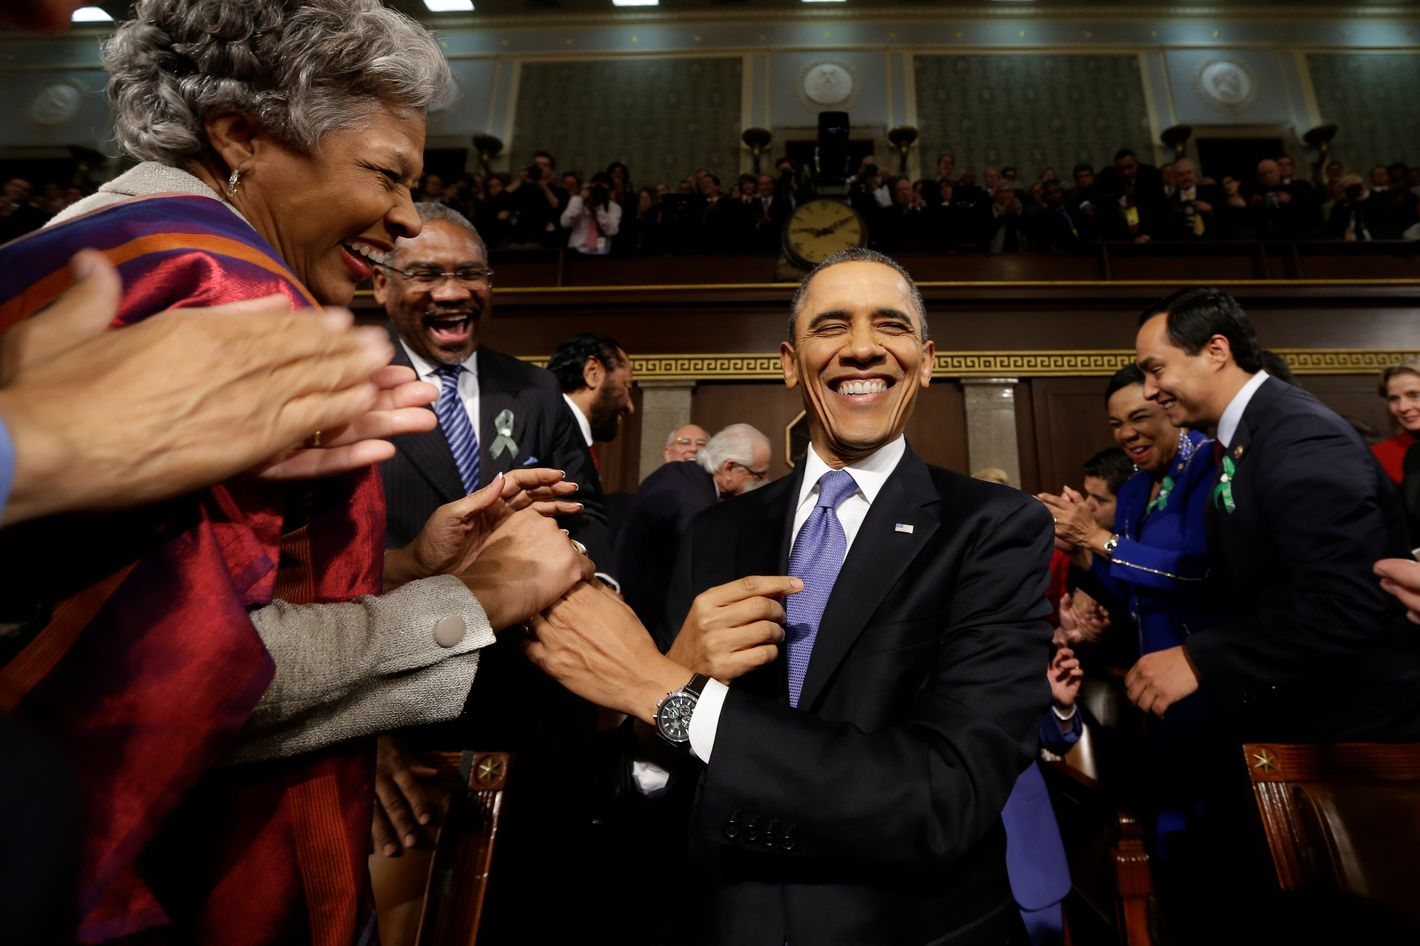 U.S. President Barack Obama is greeted before his State of the Union address during a joint session of Congress on Capitol Hill on February 12, 2013 in Washington, D.C. Facing a divided Congress, Obama is expected to focus his speech on new initiatives designed to stimulate the U.S. economy.